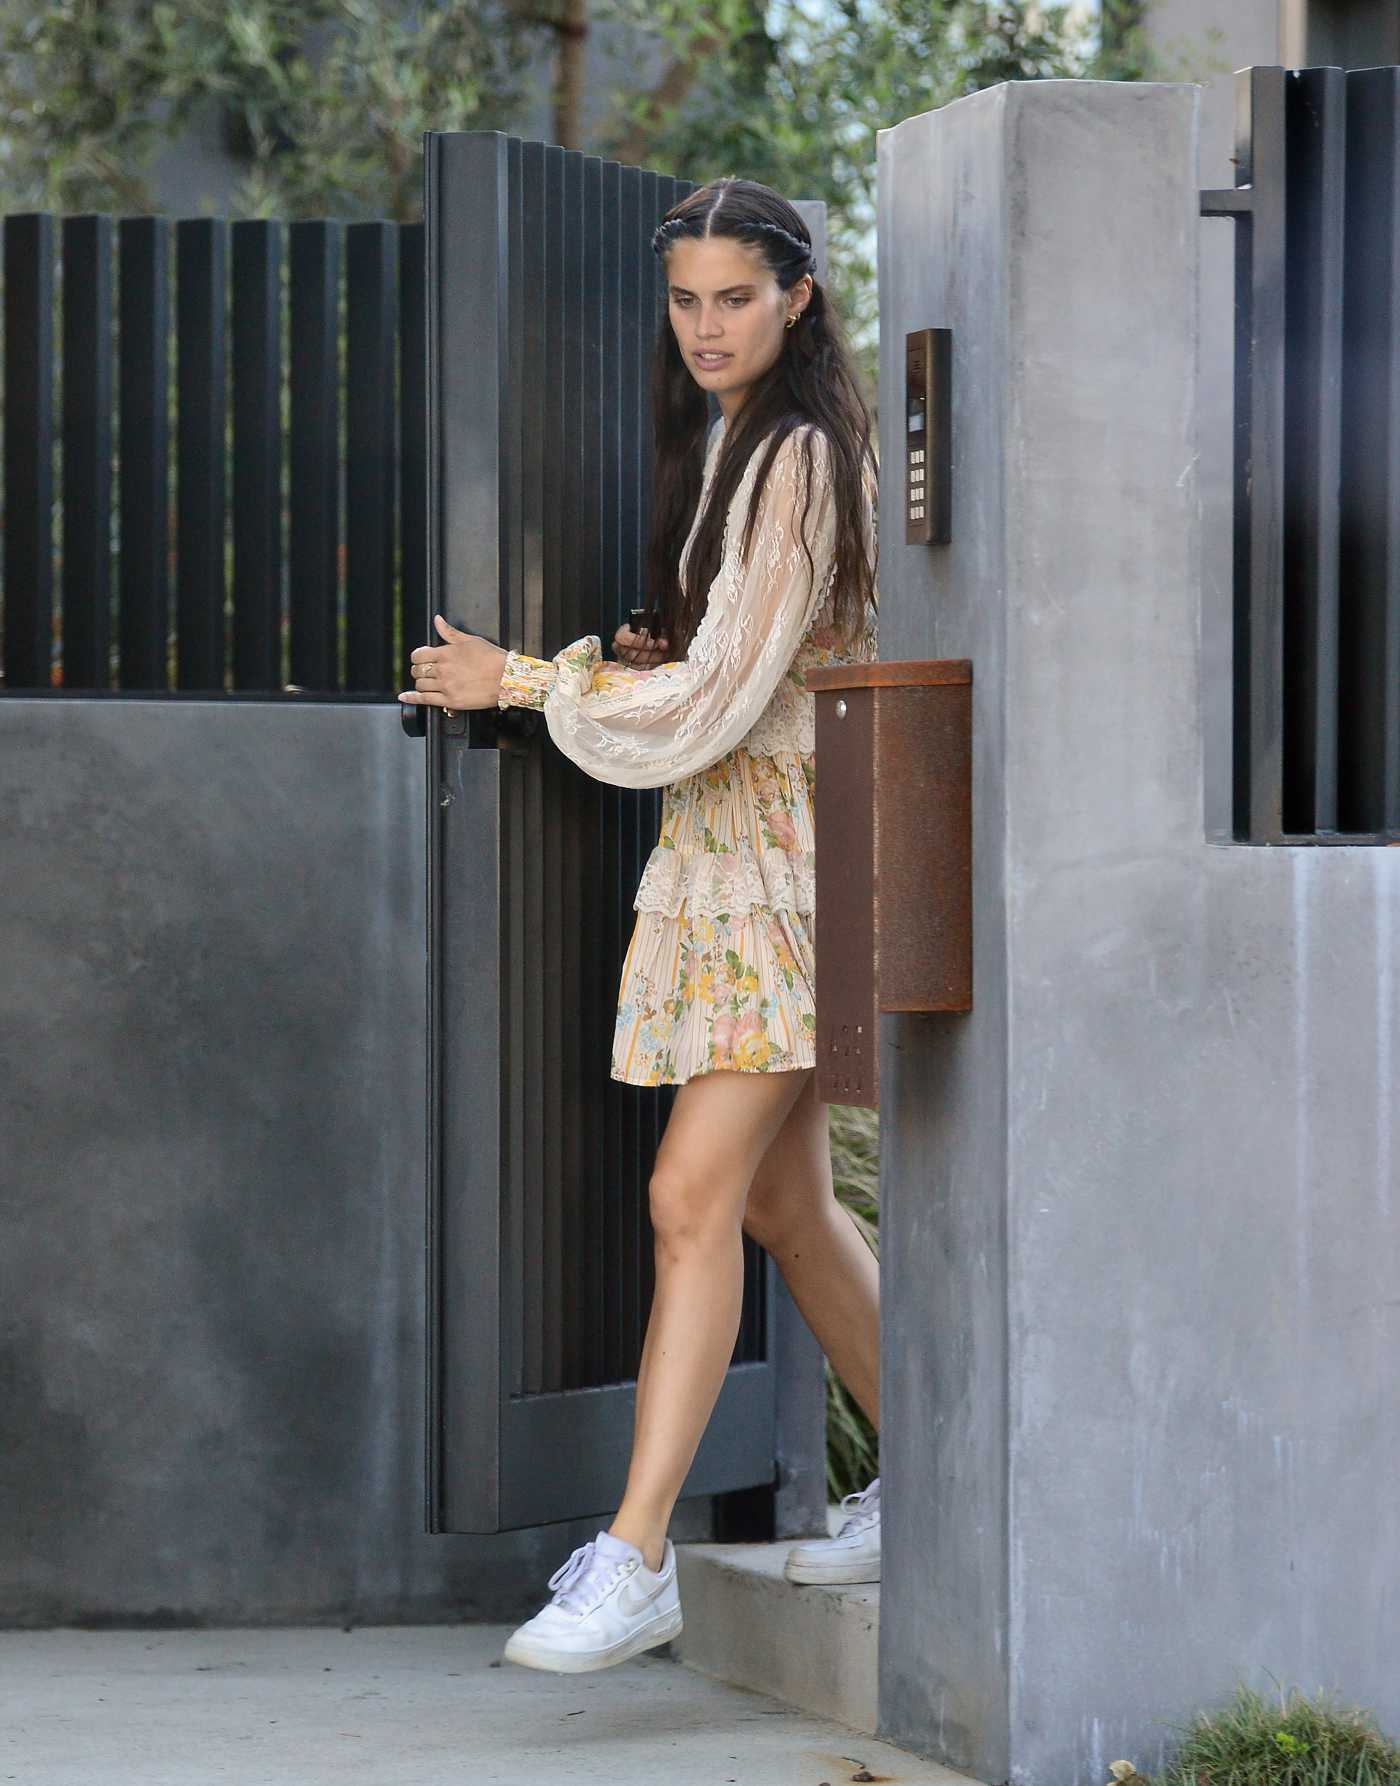 Sara Sampaio in a White Nike Sneakers Leaves a Friends House in Los Angeles 05/24/2020